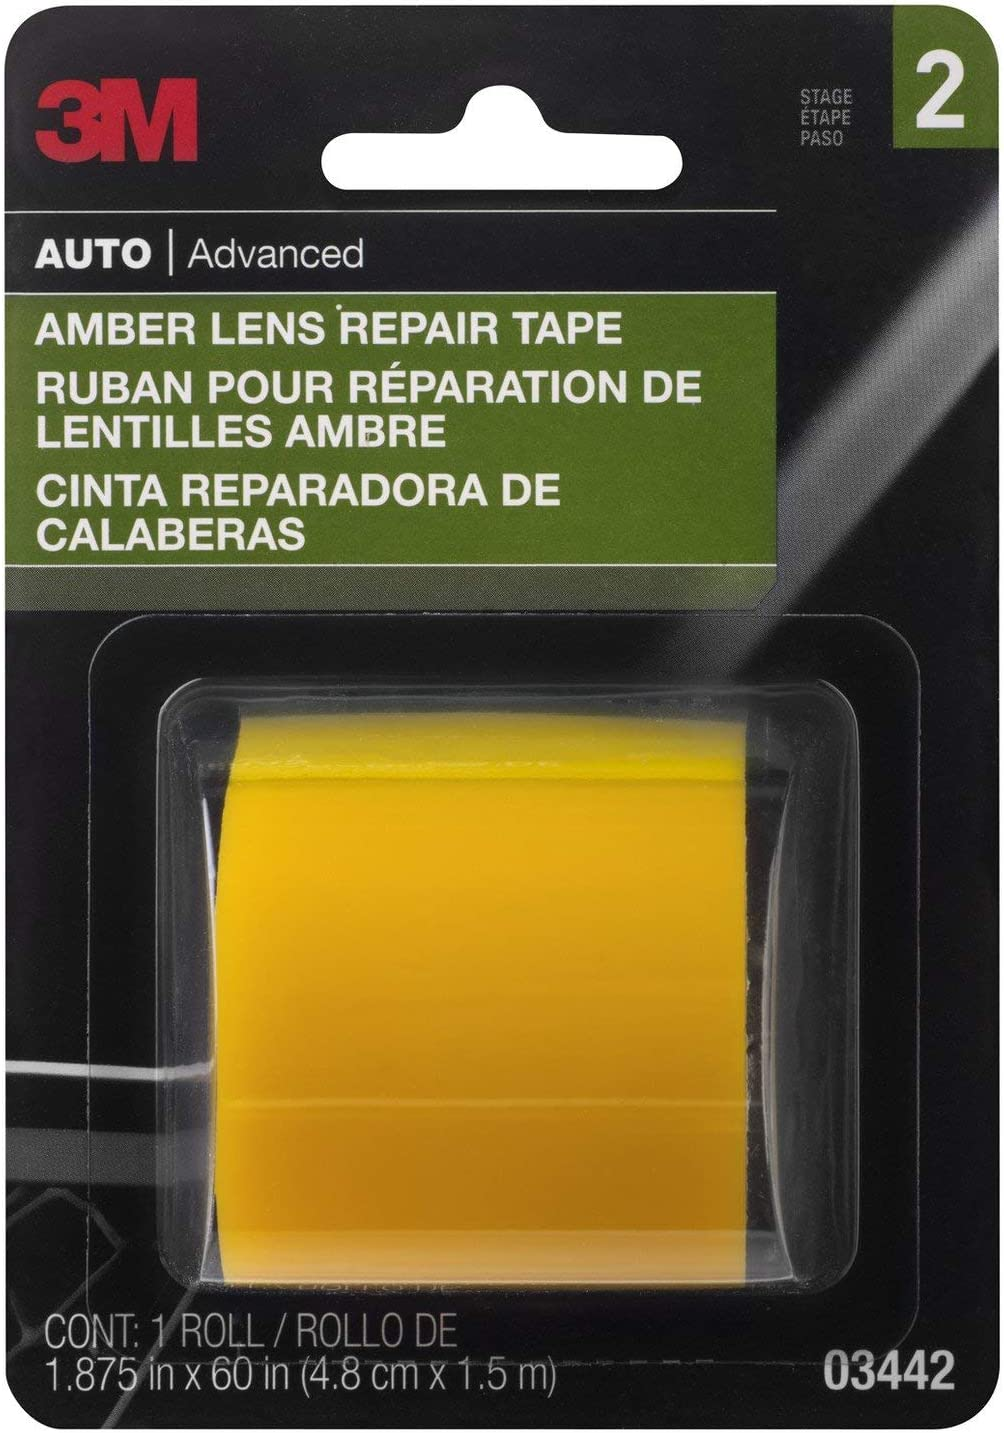 3M Amber Lens Repair Tape 1 Roll Highly Durable 4 1.9in x 60in